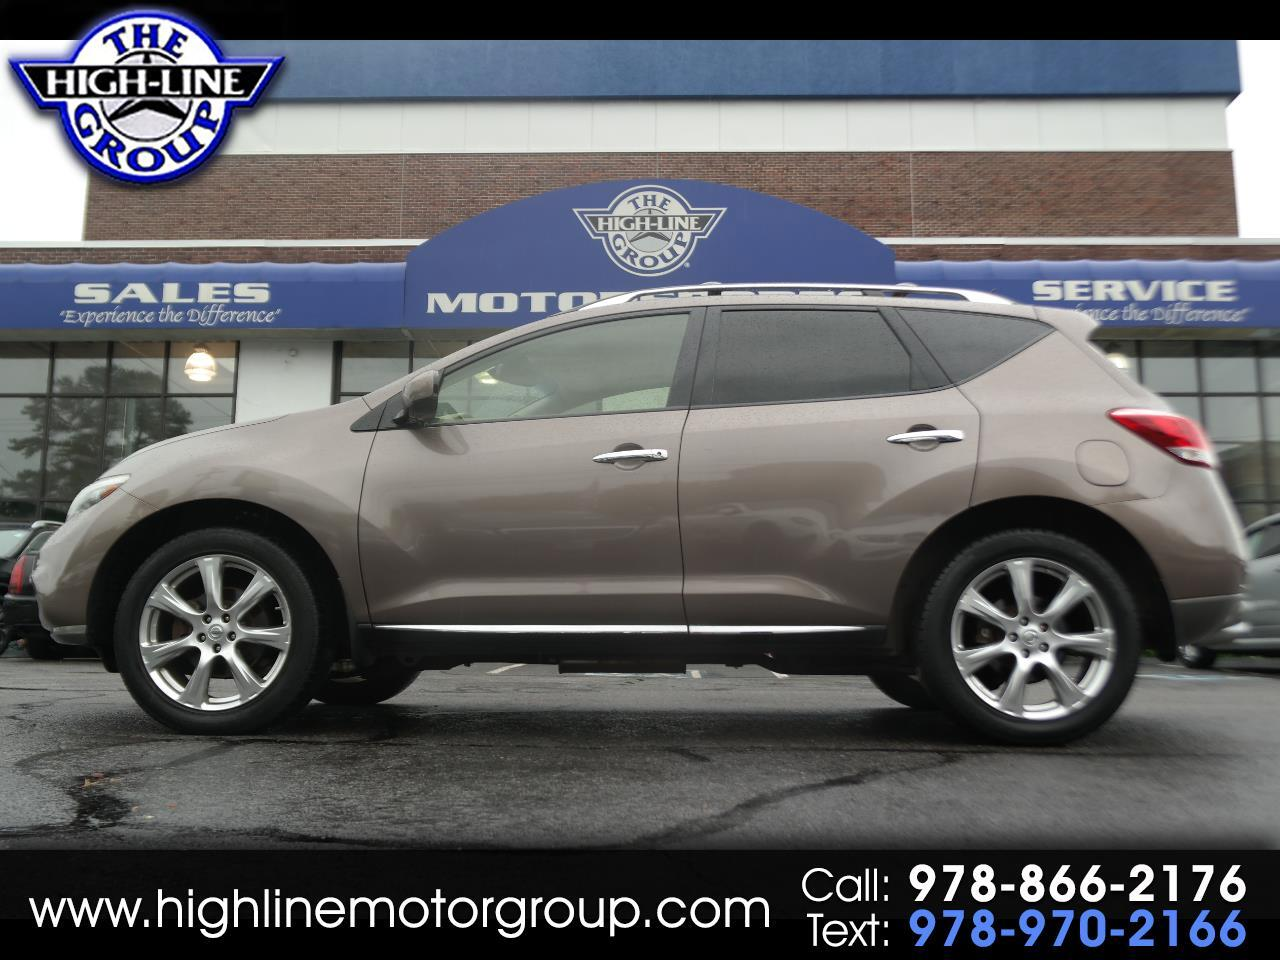 2013 Nissan Murano AWD 4dr LE